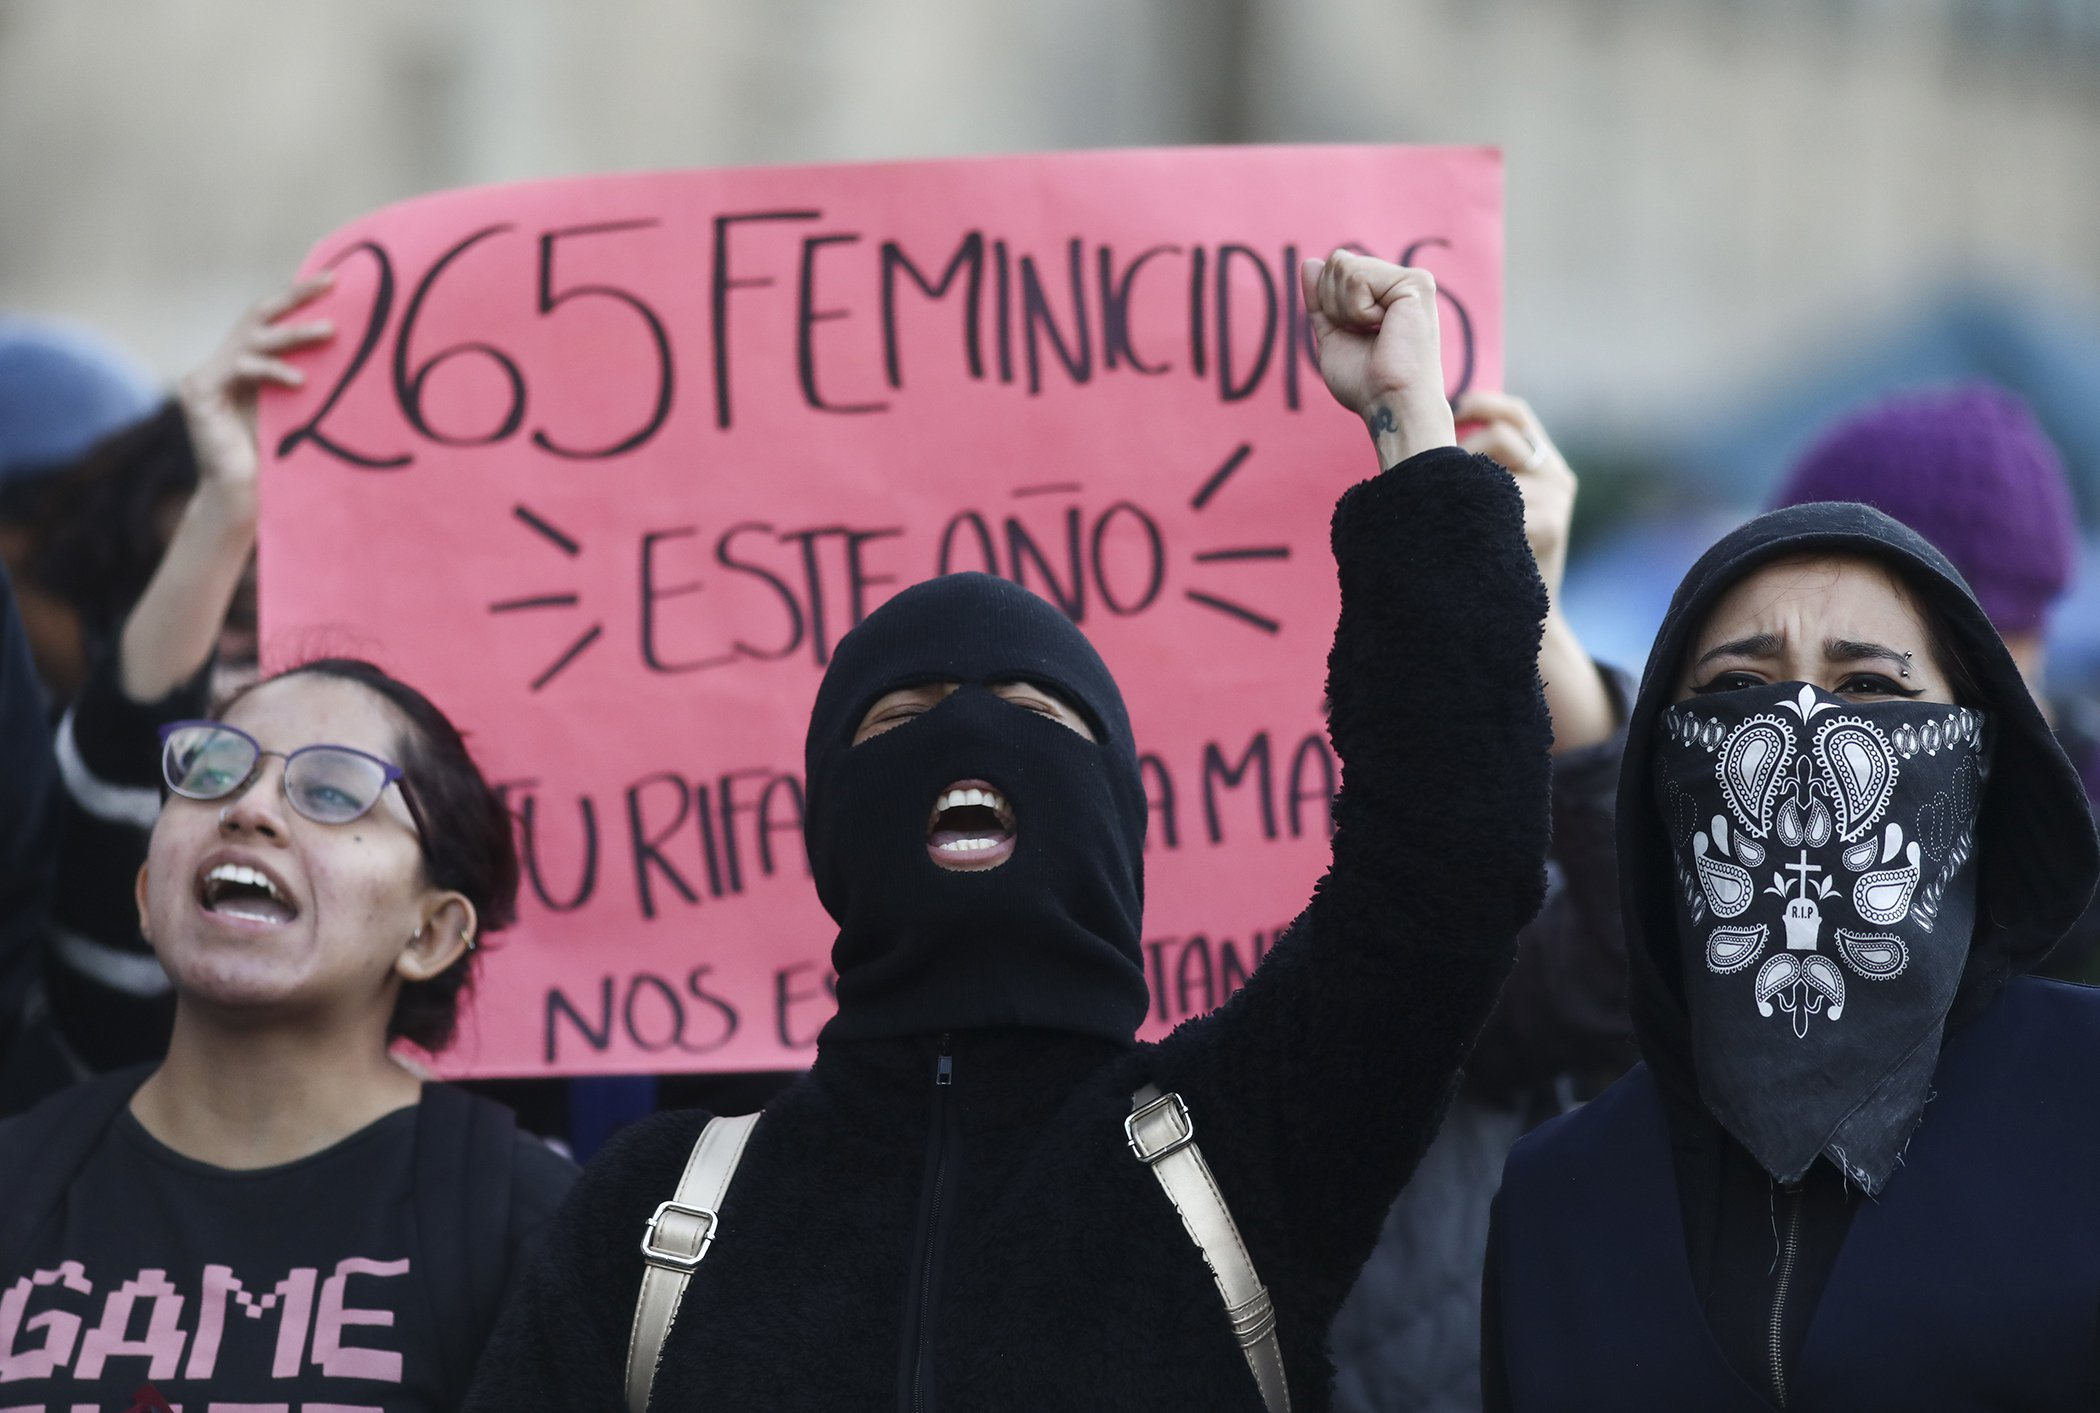 Mexicans Demand an End to Femicide Following Death of 7-Year-Old Girl